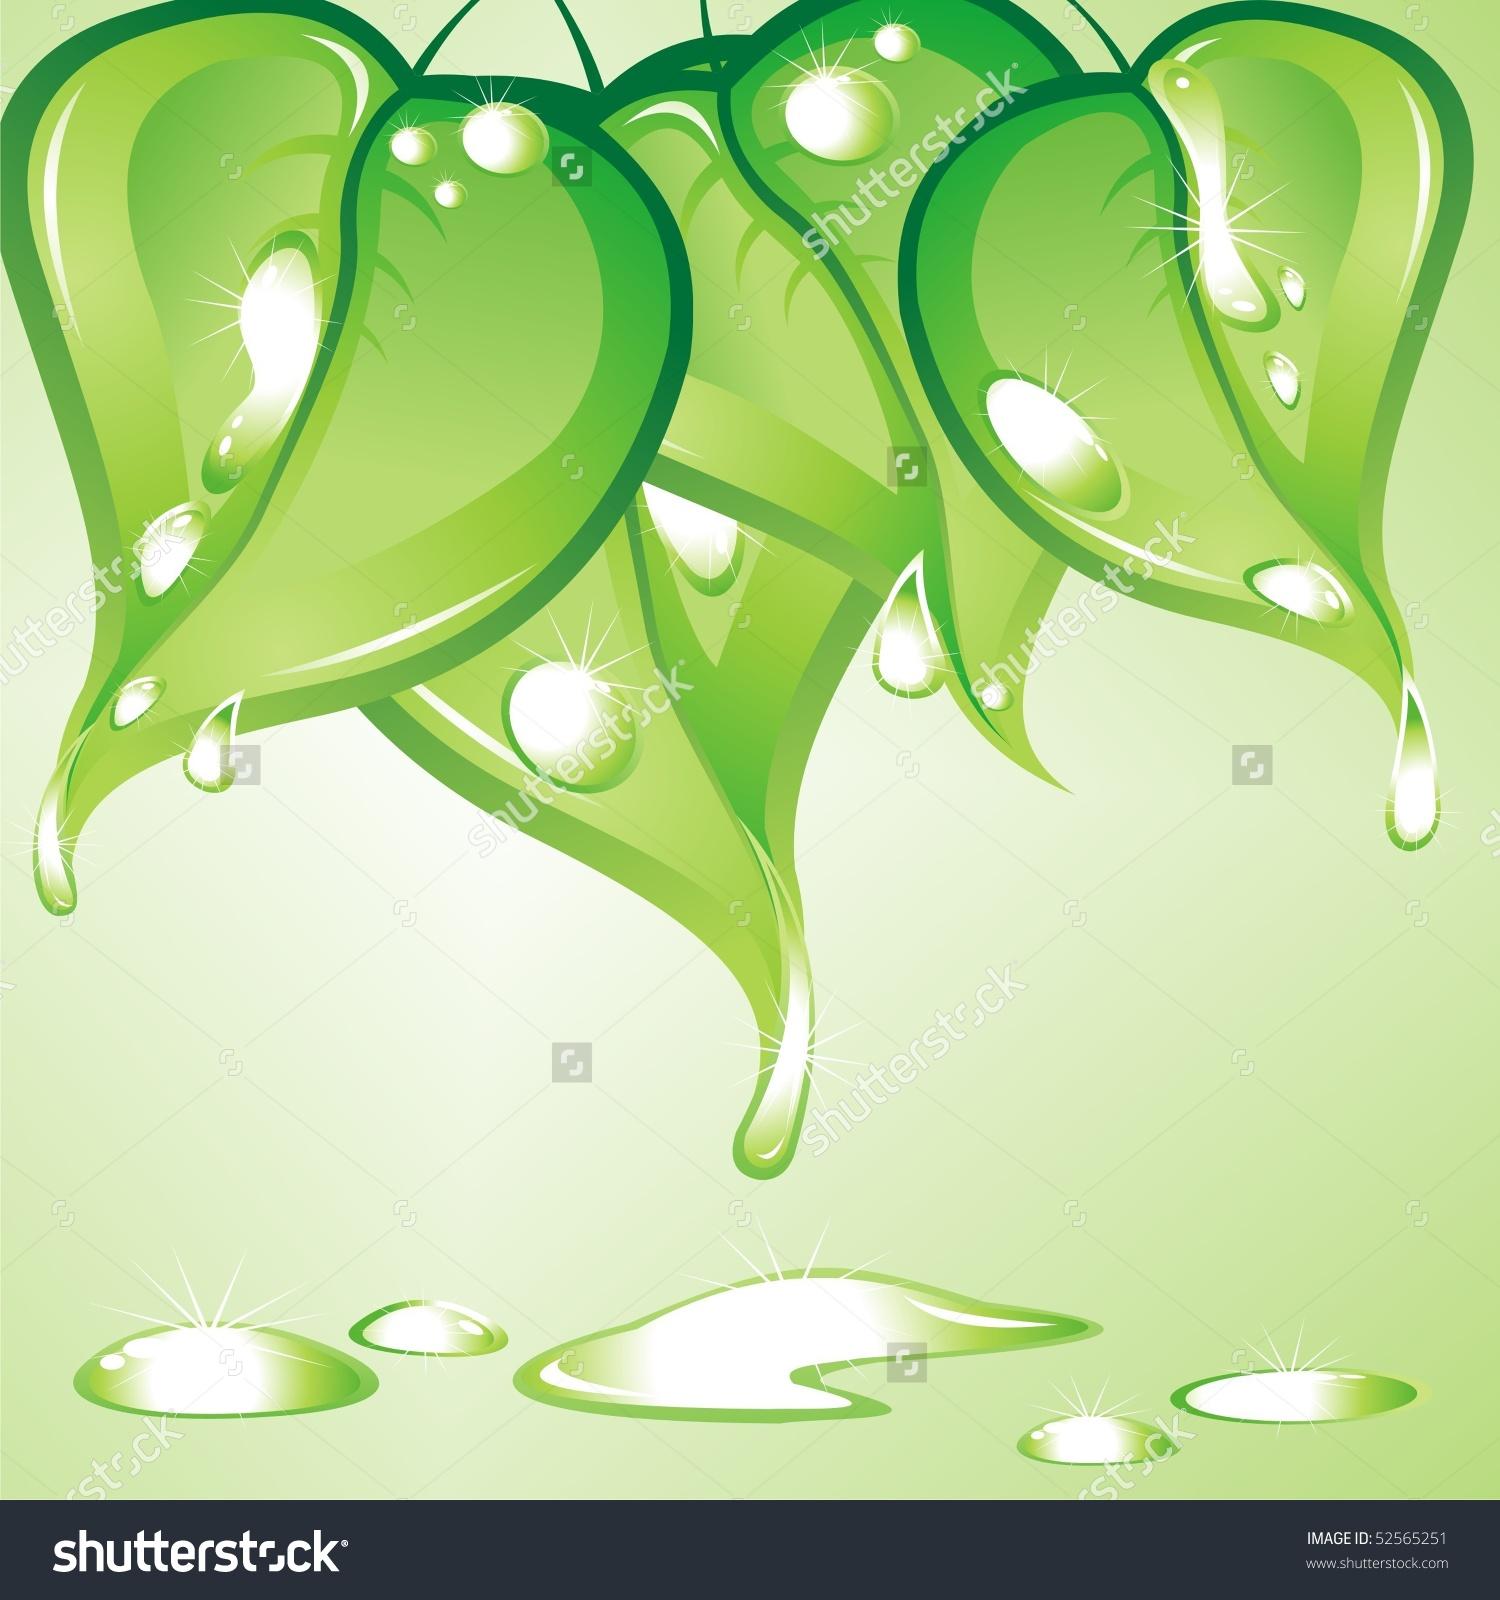 Raindrops On Leaves After Rain Stock Vector 52565251.